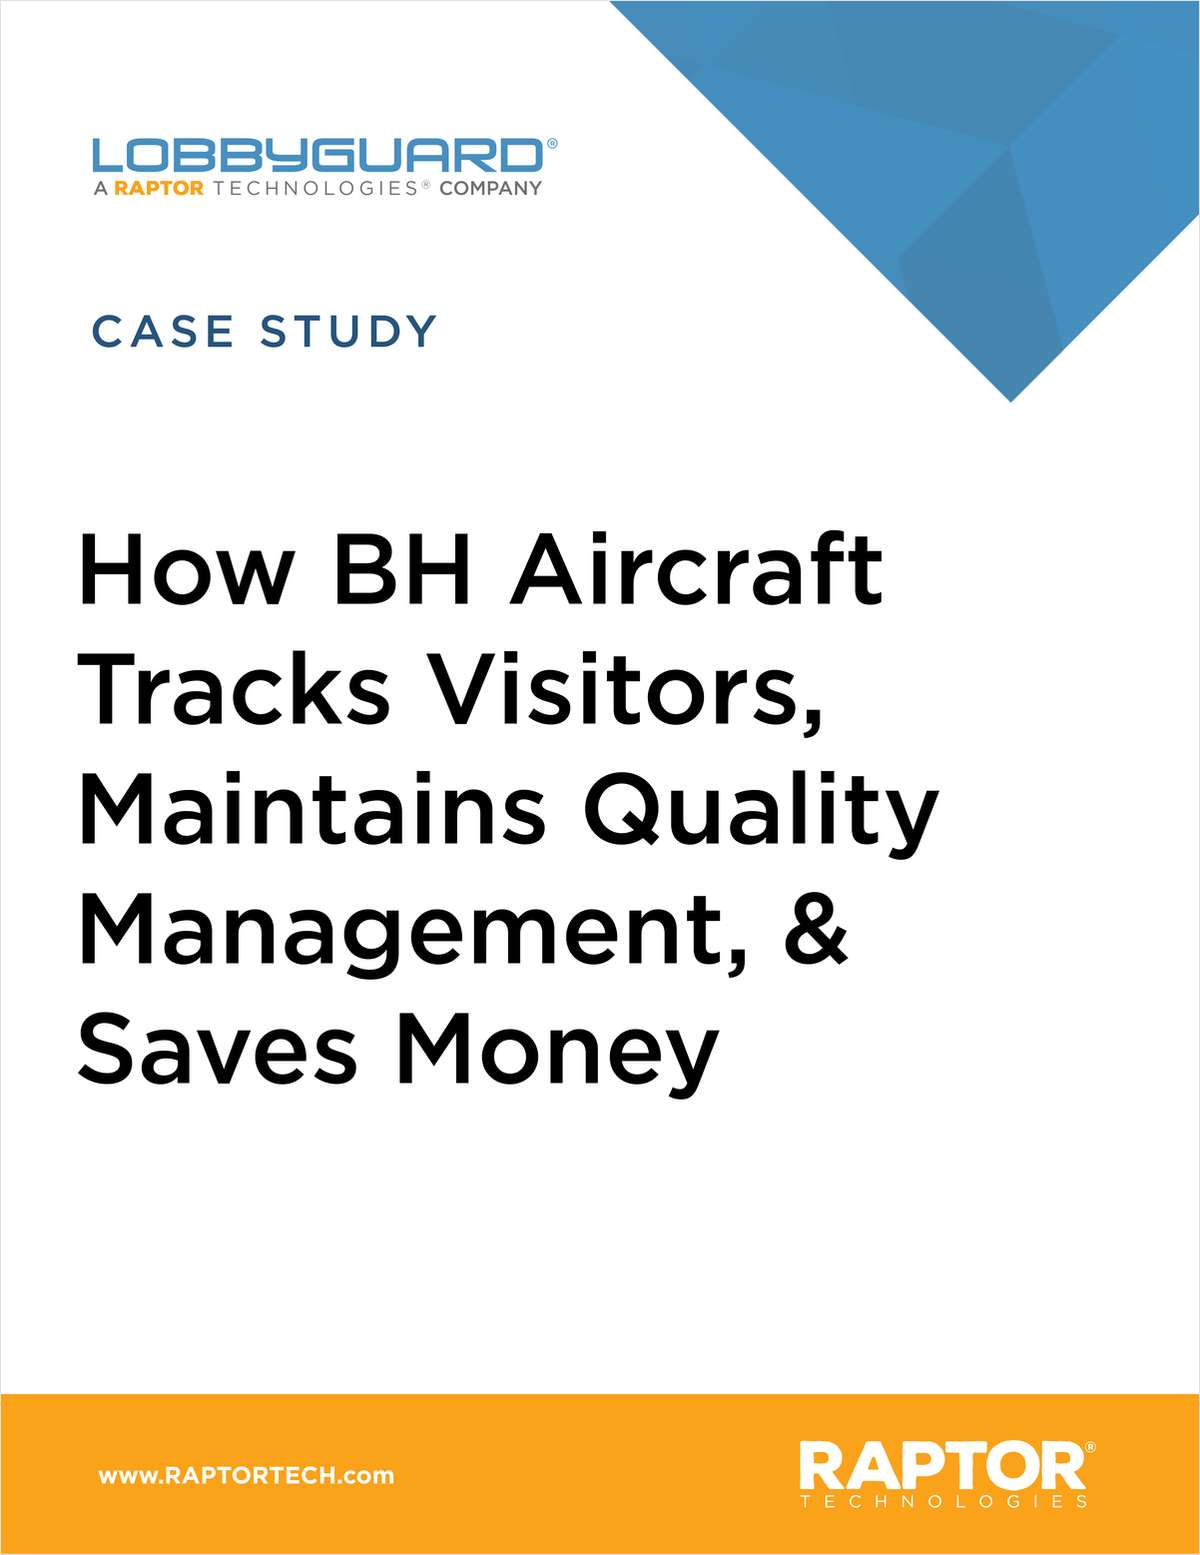 BH Aircraft Tracks Visitors, Maintains Quality Management Certification, Saves Money